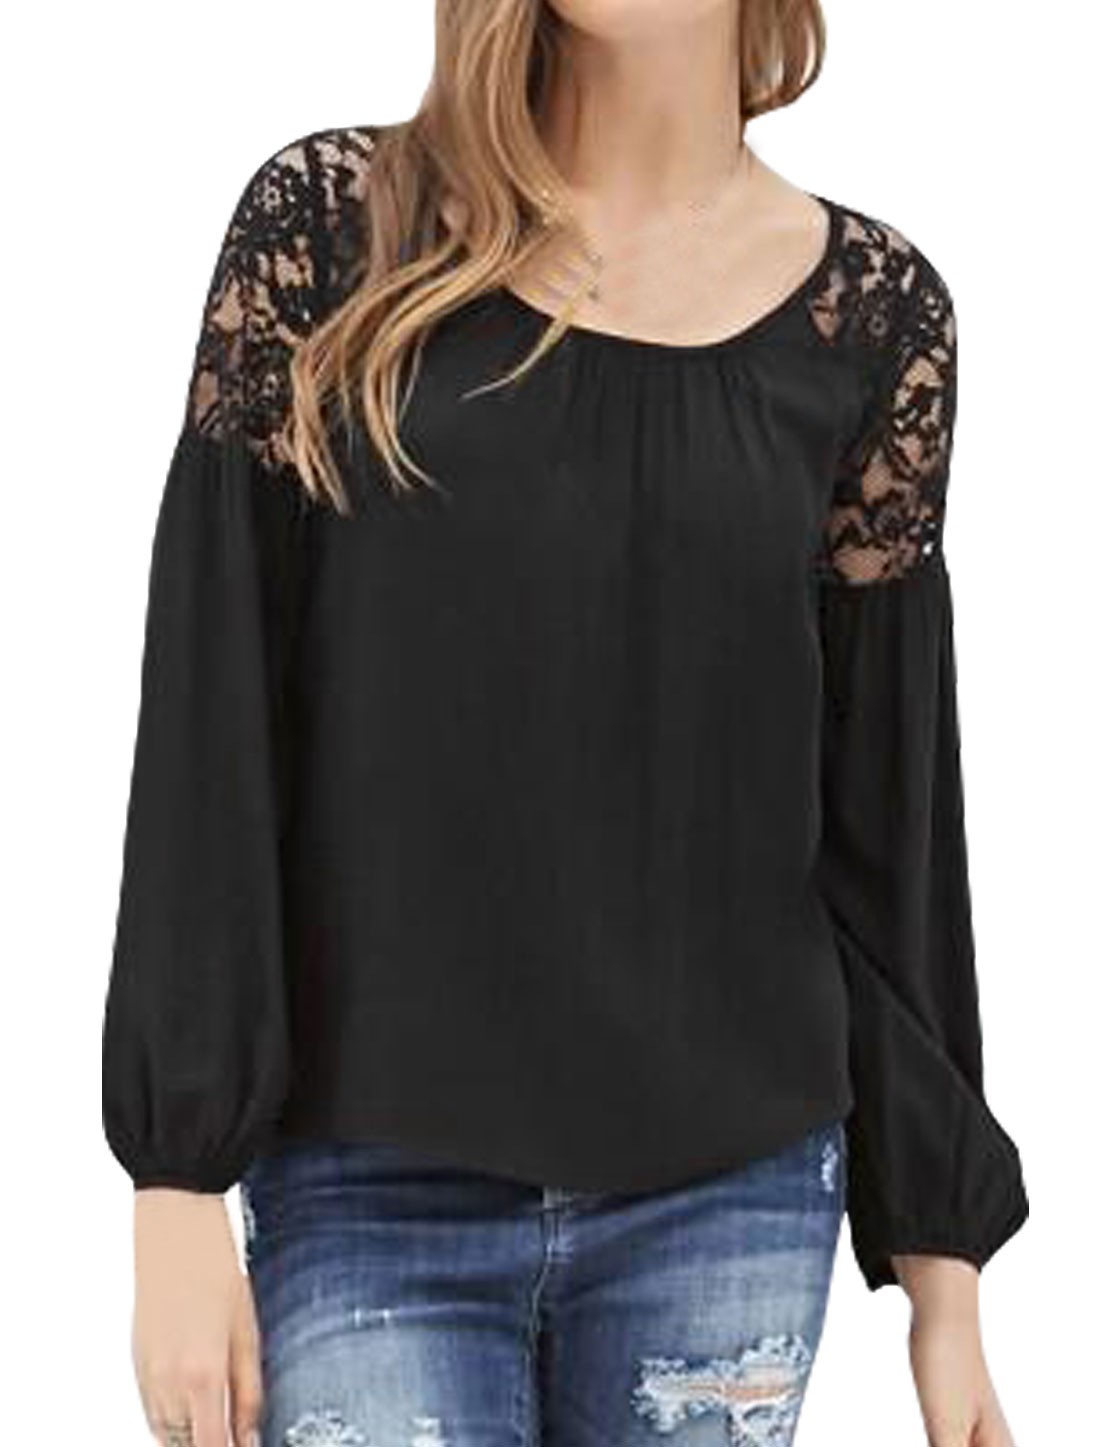 Women Raglan Sleeves Lace Panel Semi Sheer Blouse Black M